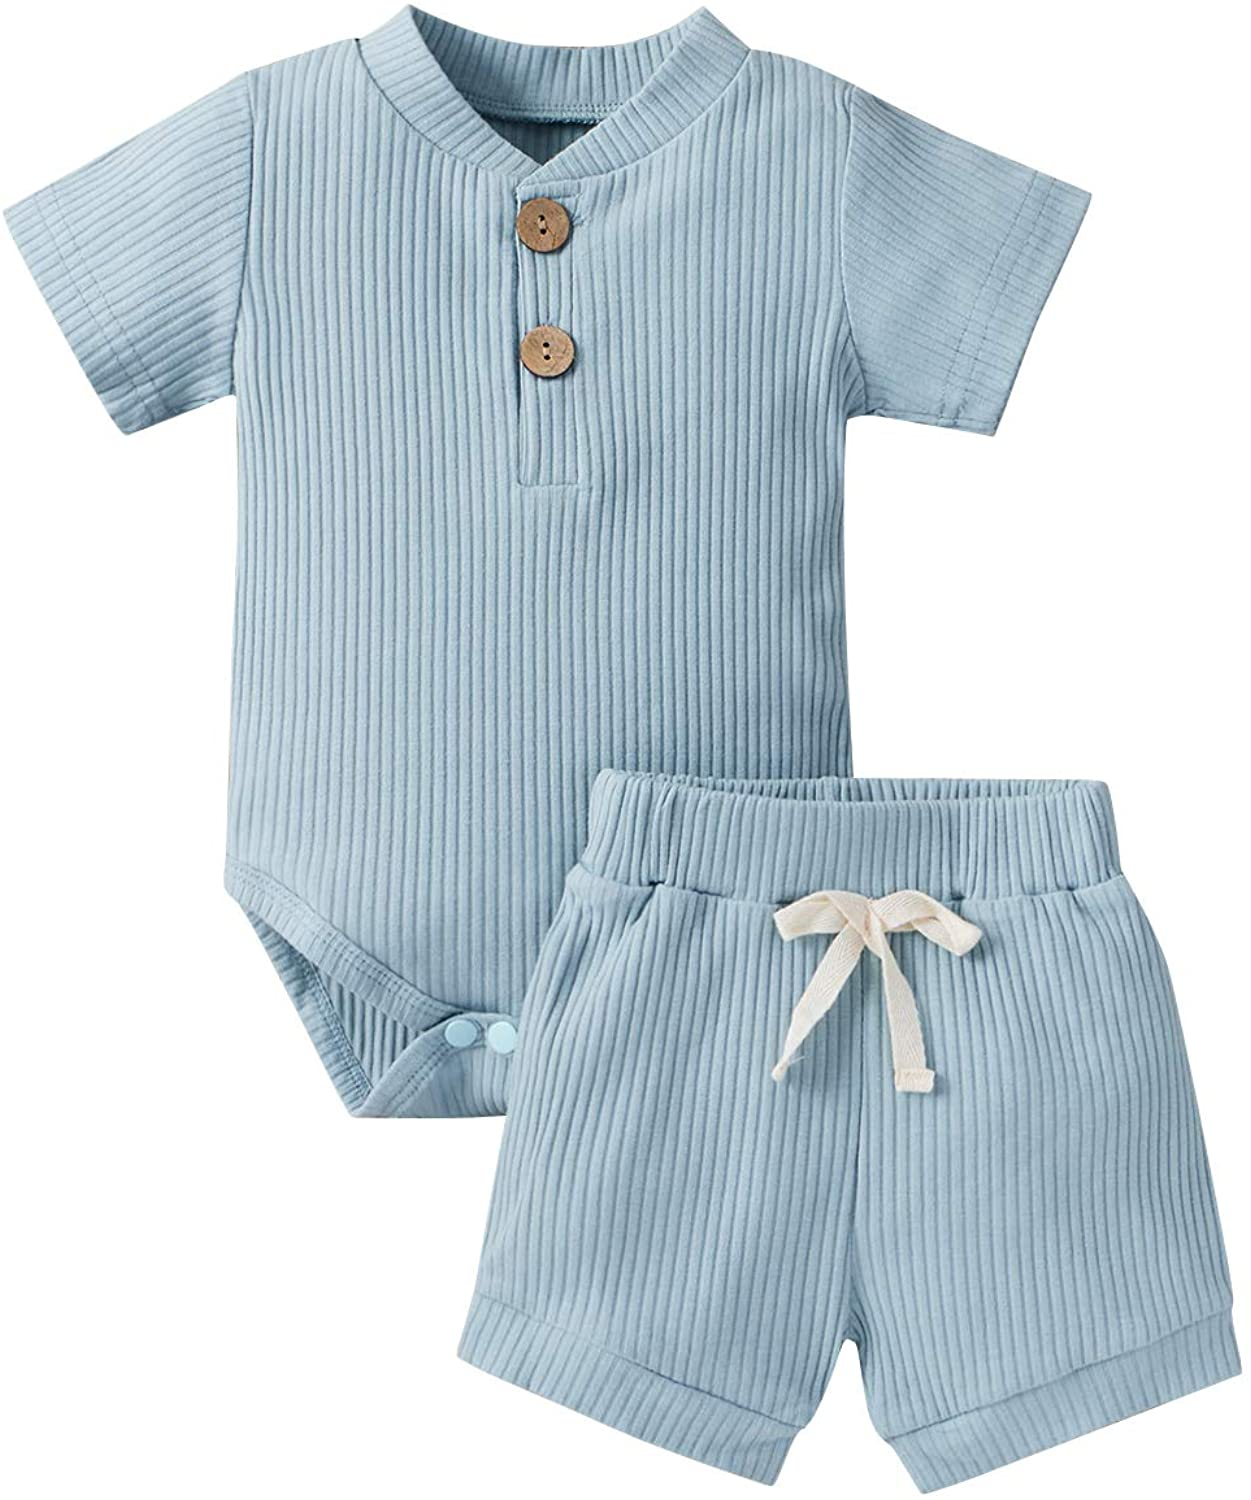 2pcs Summer Newborn Baby Boy Girl Ribbed Shorts Outfits Solid Short Sleeve Romper Bodysuit+Short Pant Summer Clothes Set